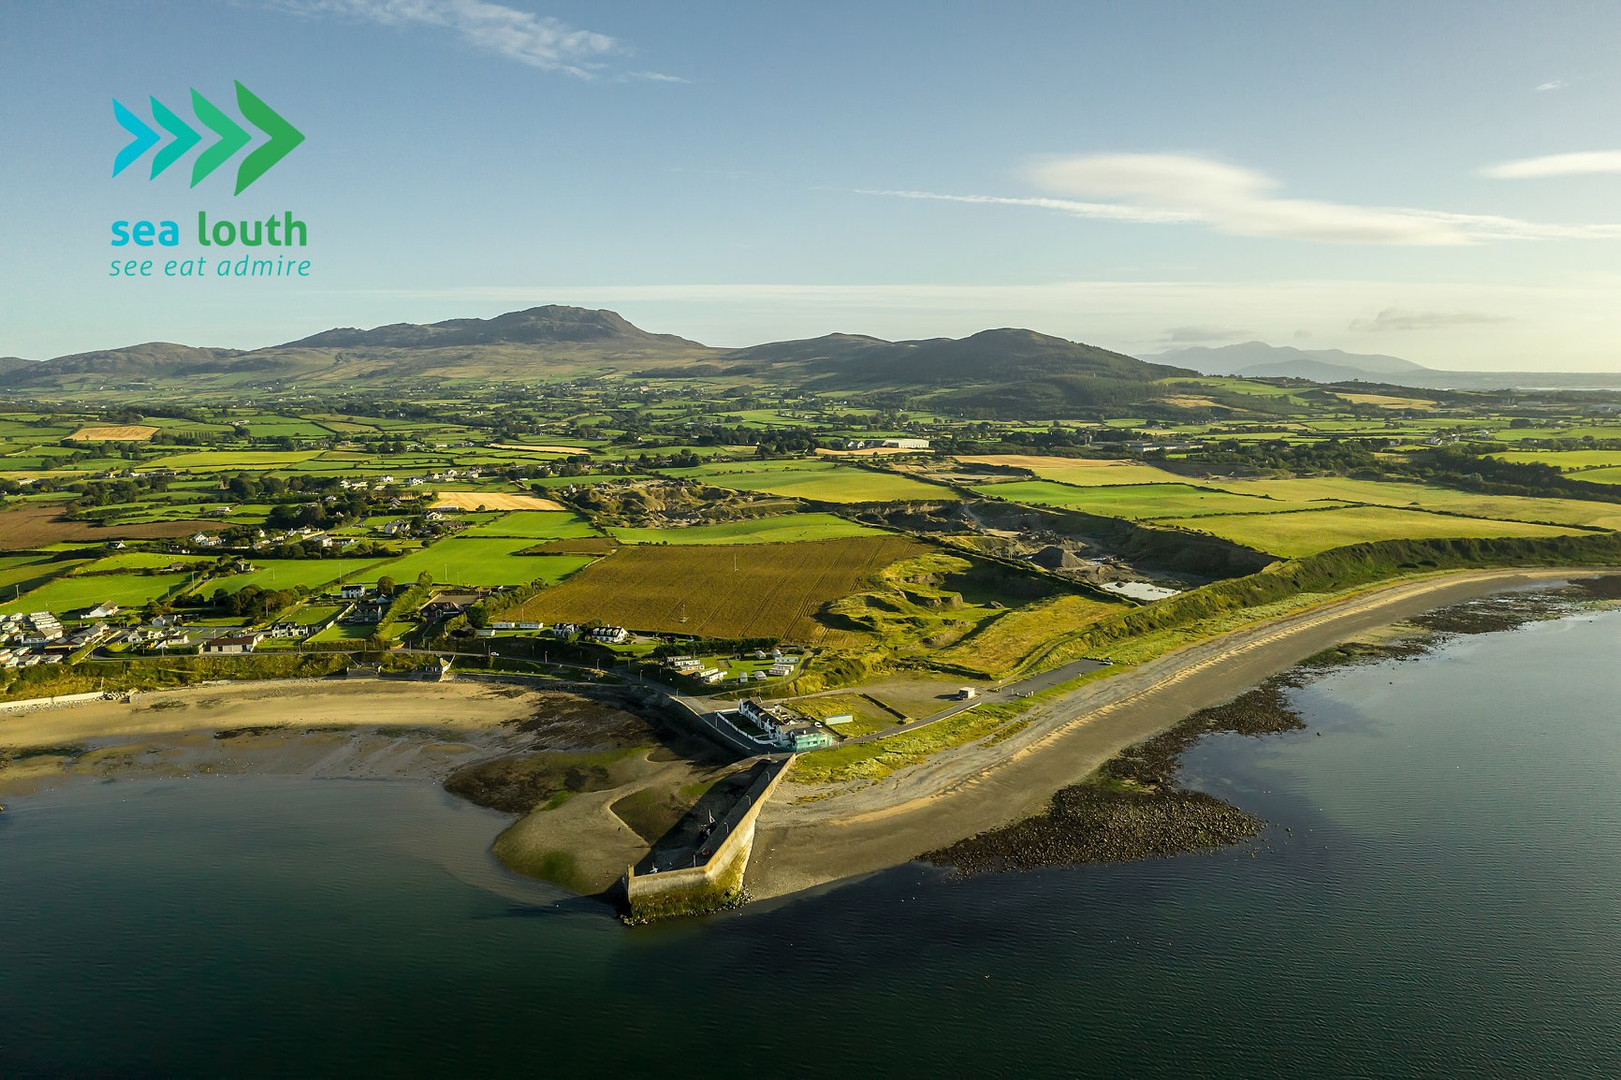 sea louth_Gyles Quay_branded (low res).j